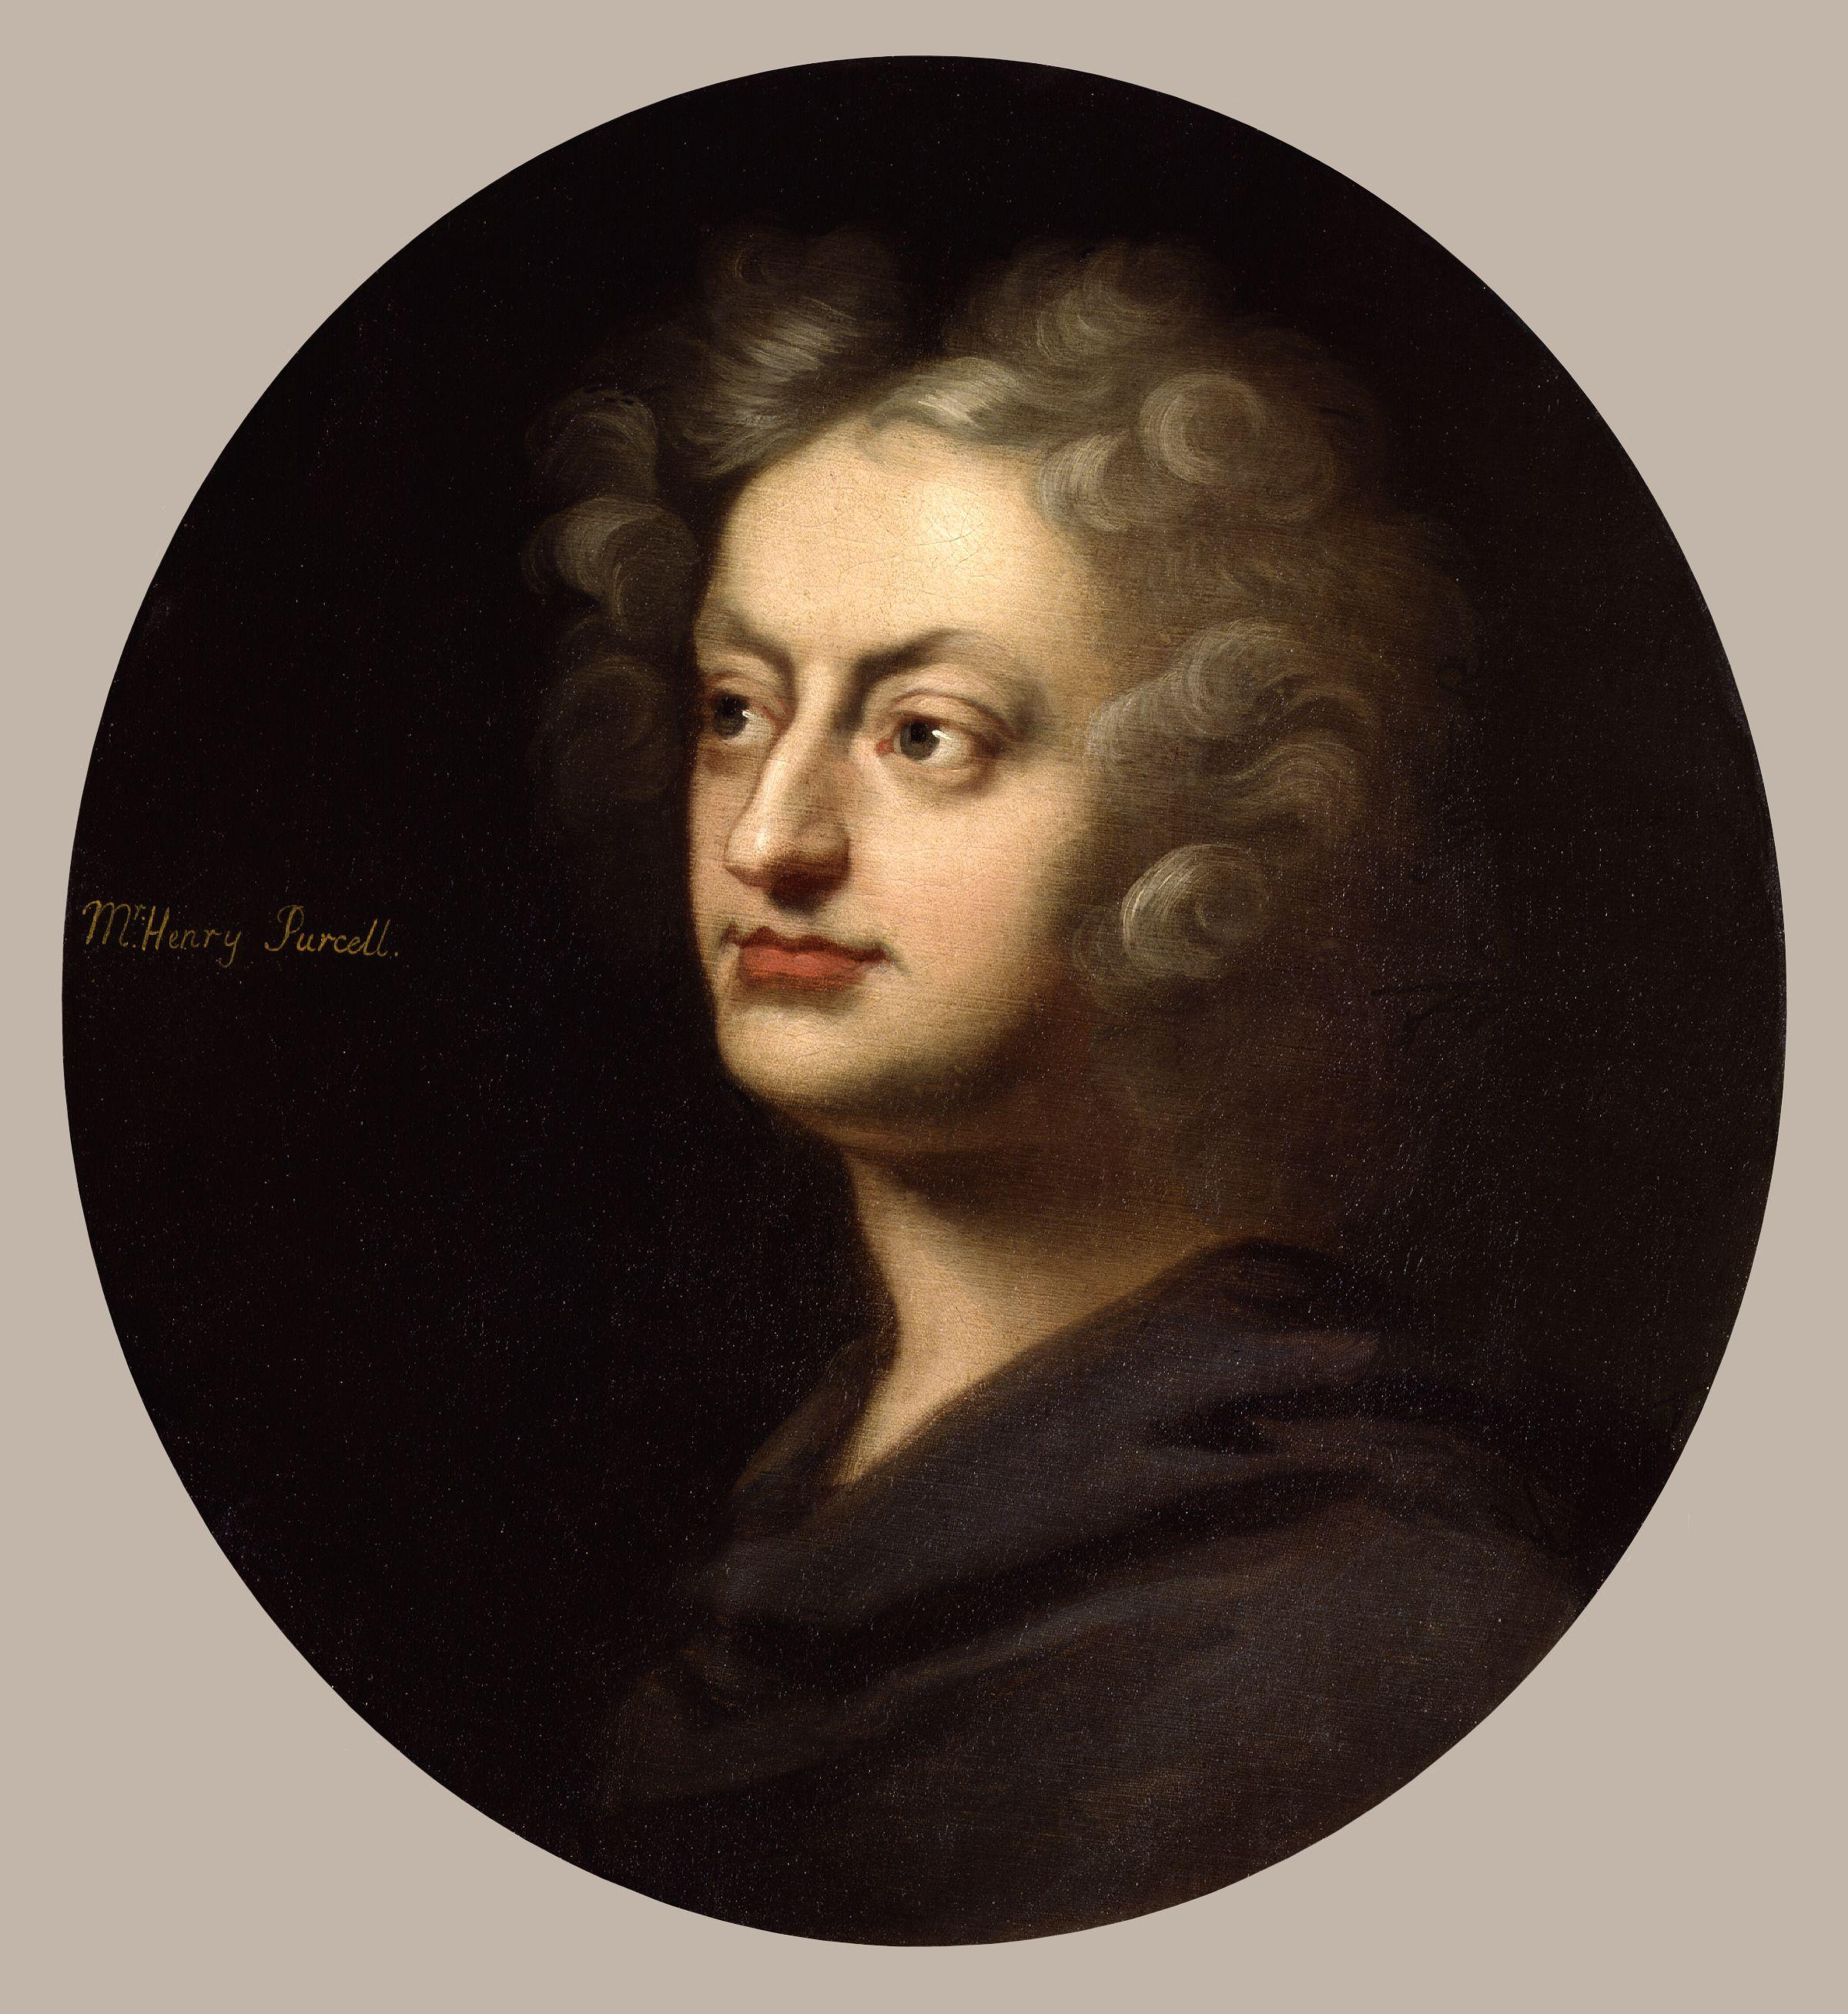 Depiction of Henry Purcell